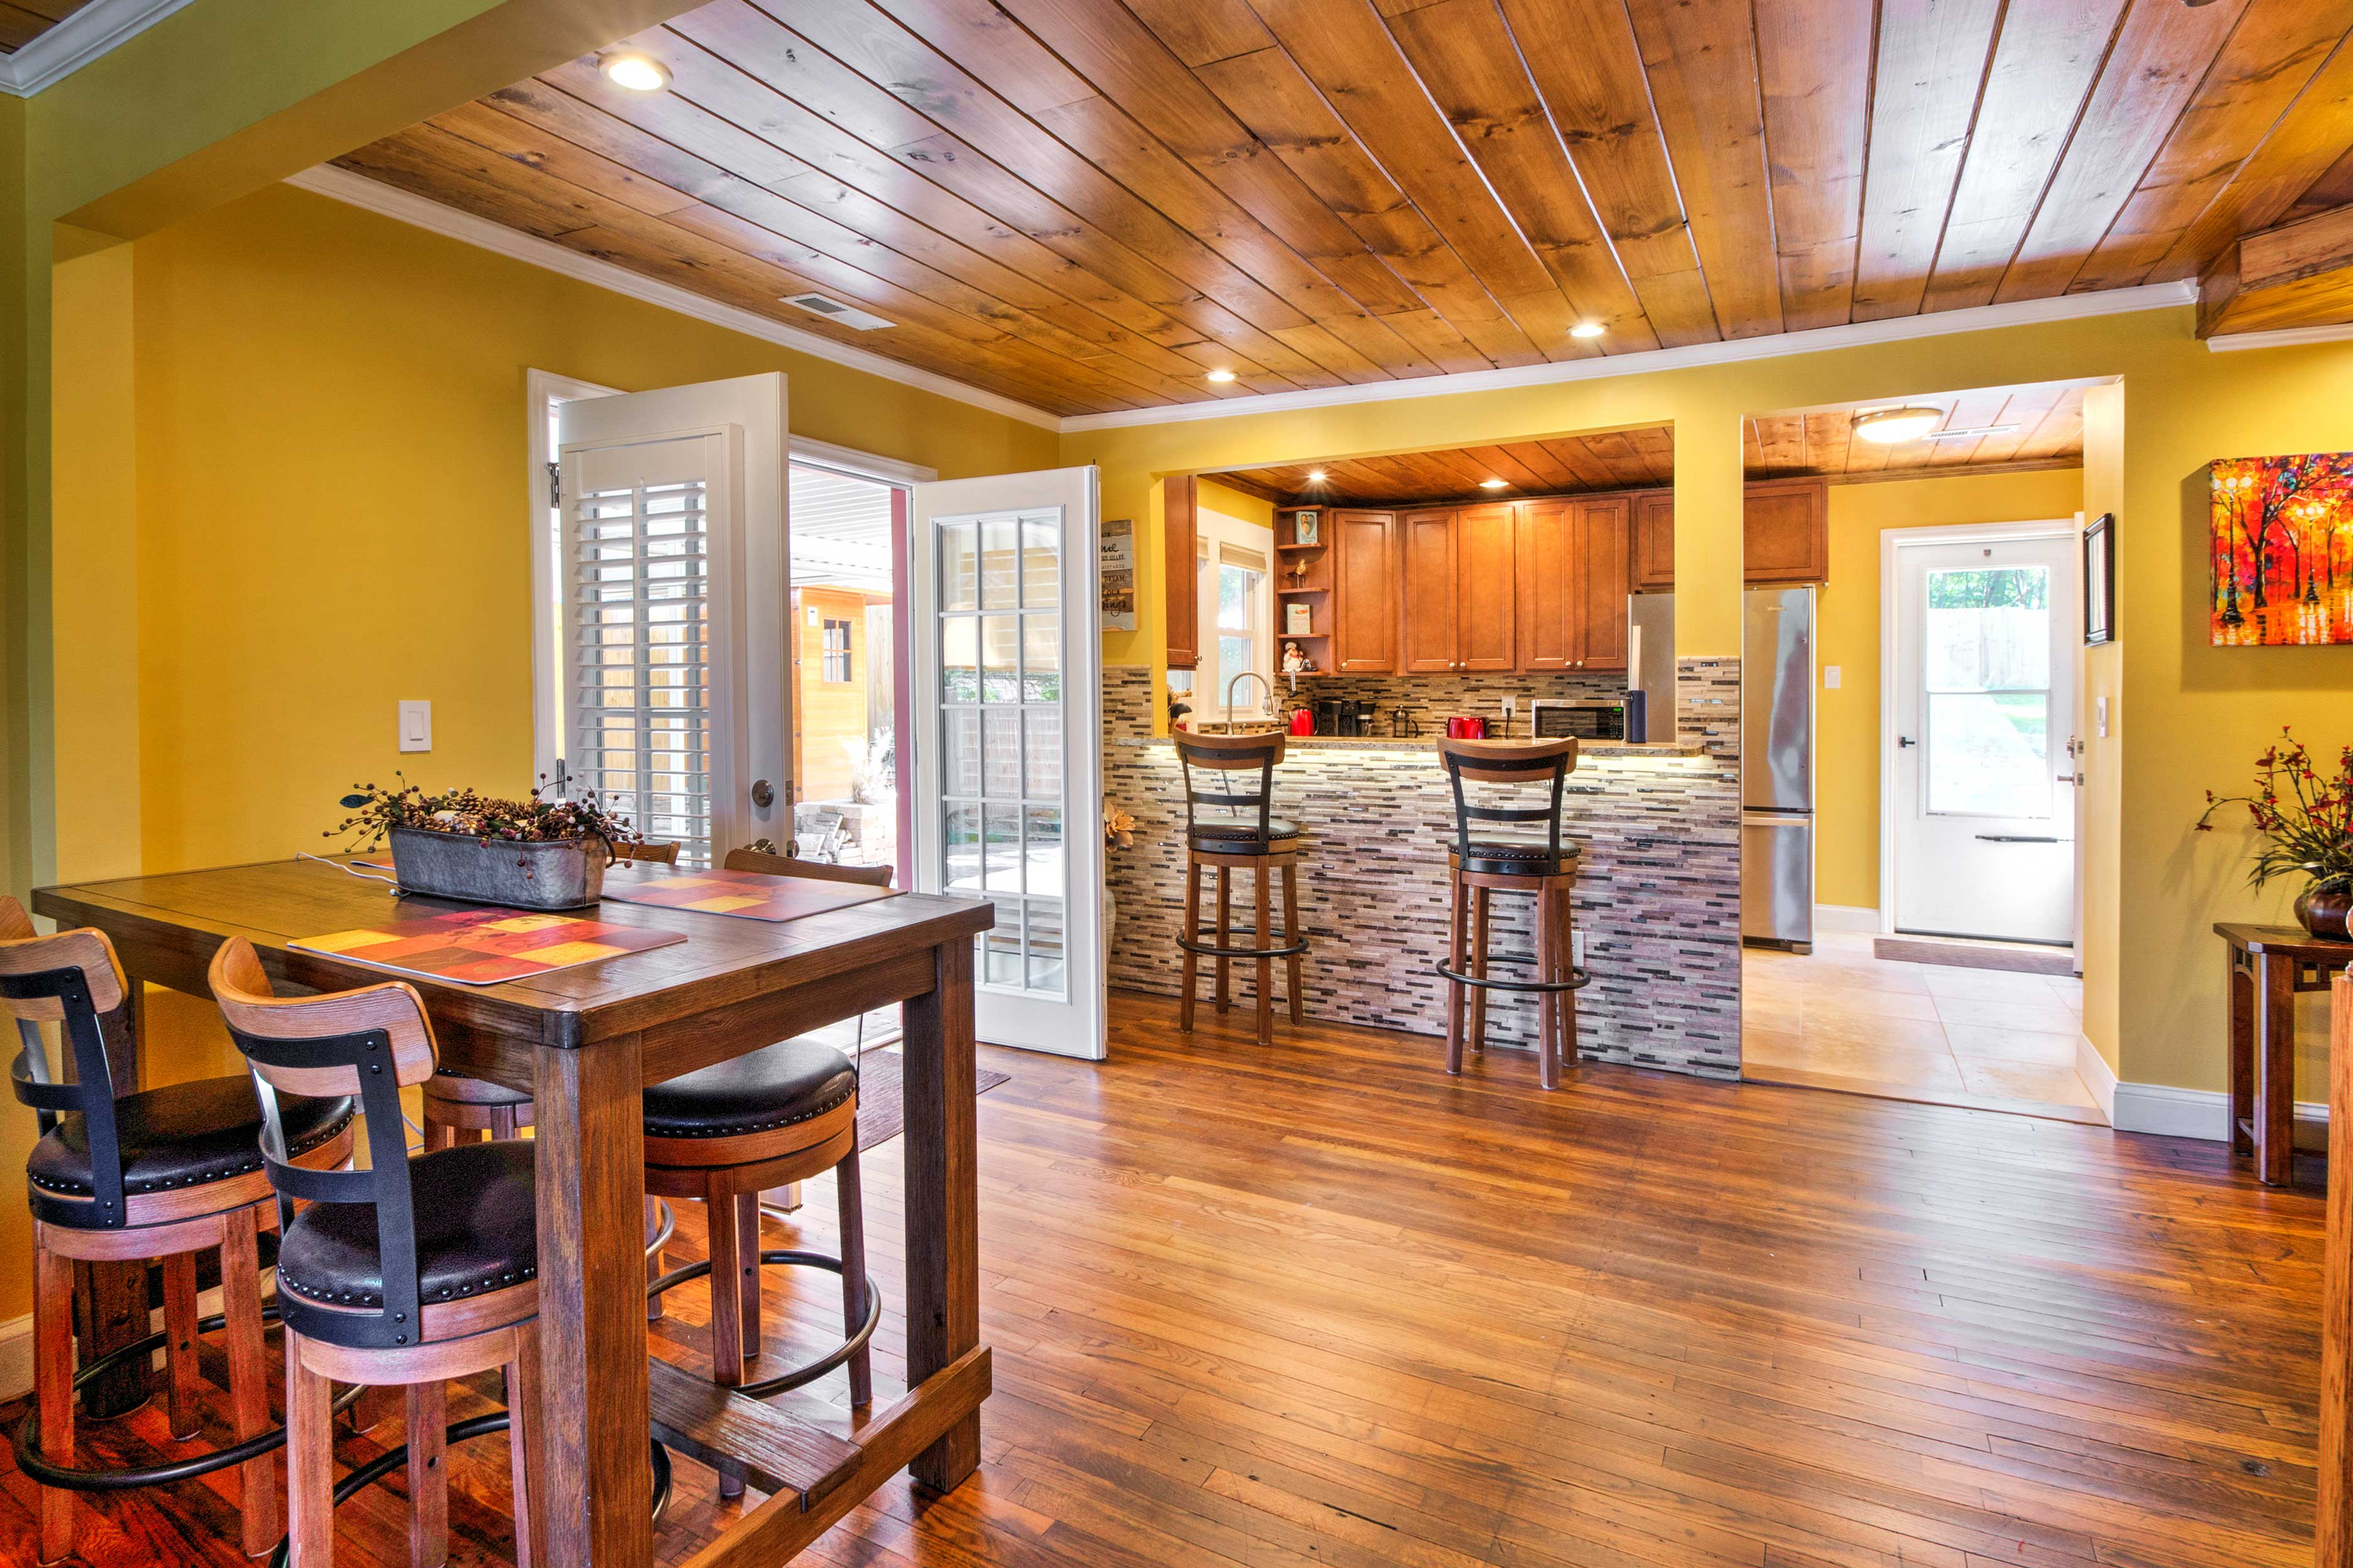 Open the large french doors that open to the covered patio for some fresh air and natural light.